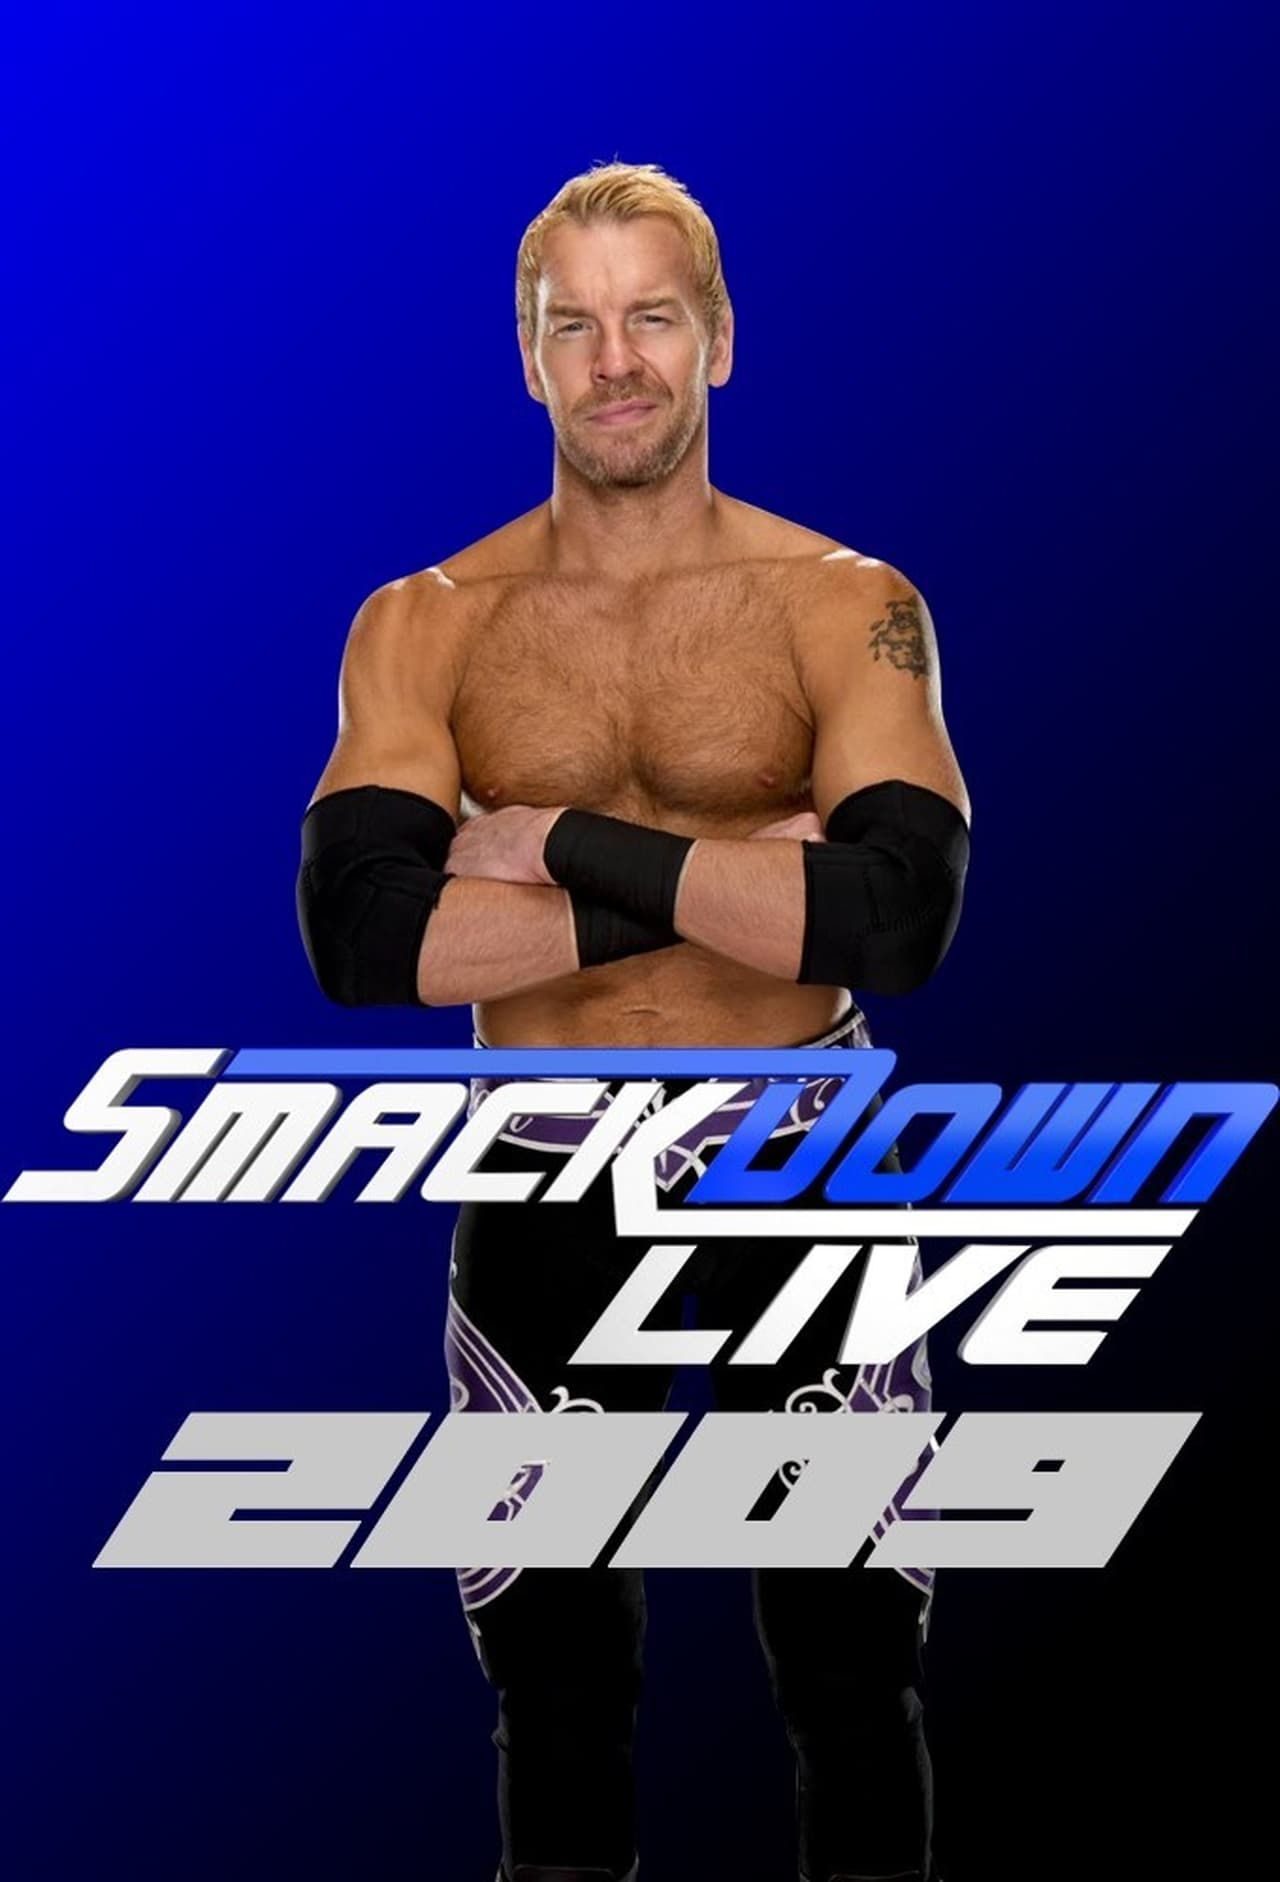 Putlocker Wwe Smackdown Live Season 11 (2009)